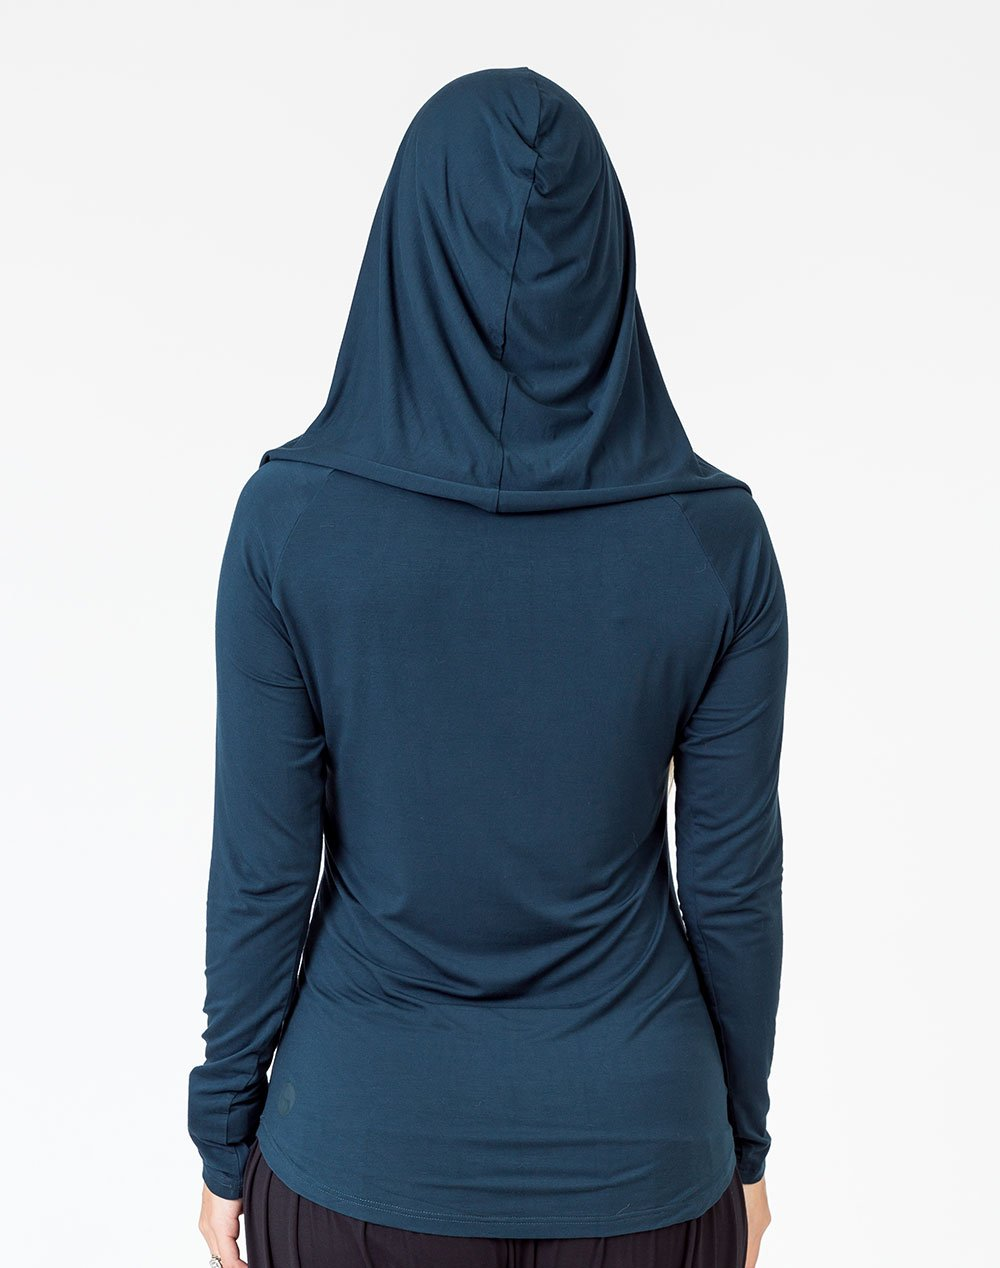 back view of a mom wearing a peacock color breastfeeding hoodie with the hood up